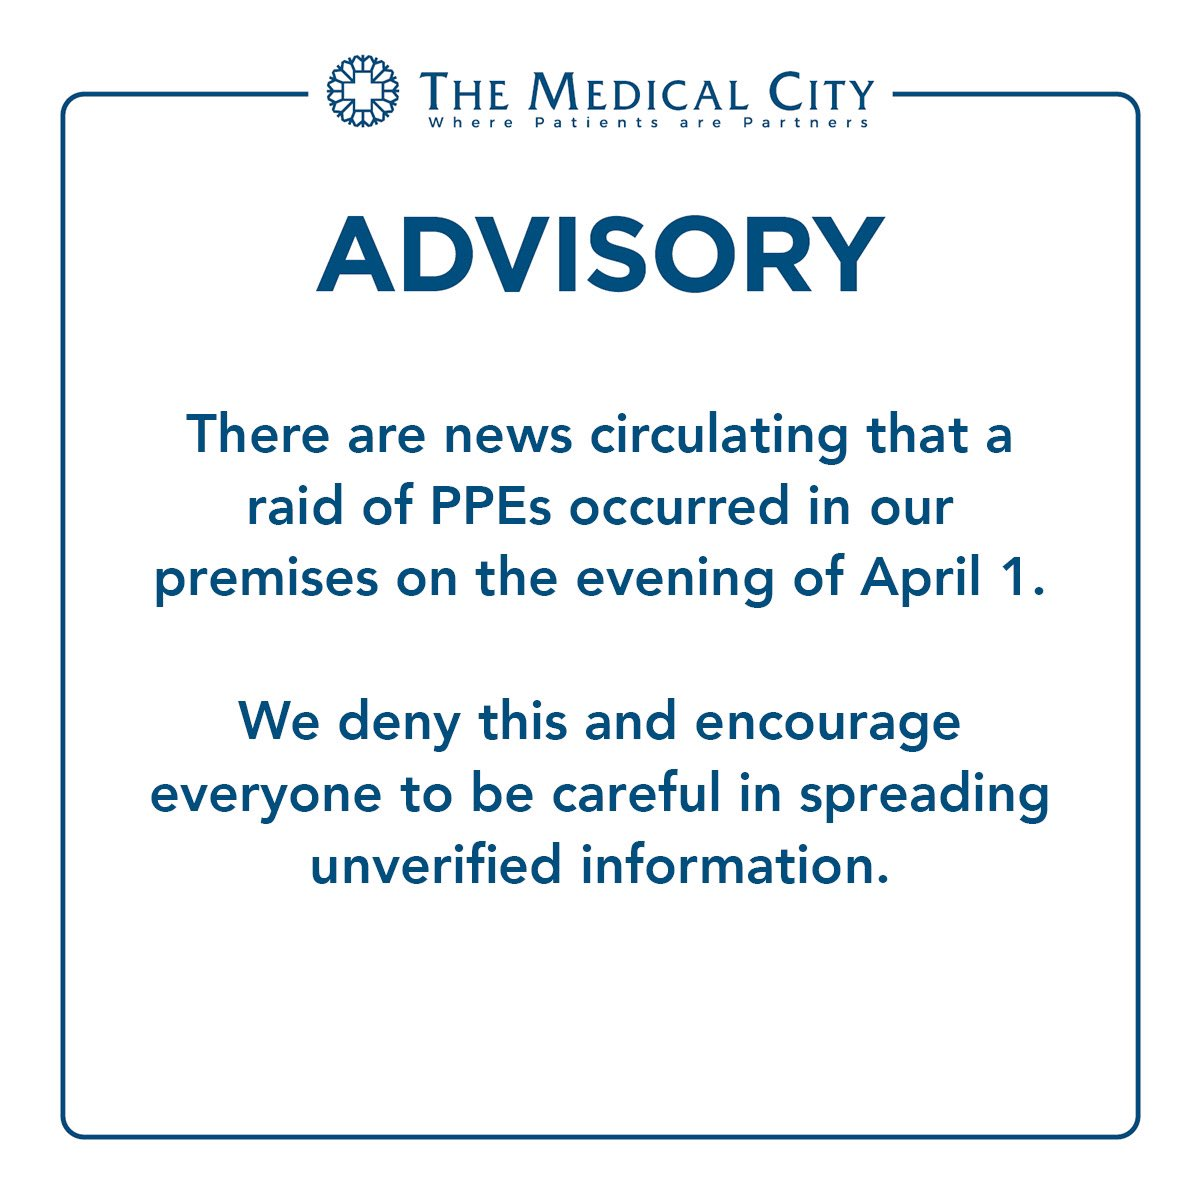 JUST IN: The Medical City denies that a raid of personal protective equipment (PPE) happened in its premises, urges the public to be cautious in spreading news | via @askTMC   Follow our live blog for more updates: https://t.co/CG4XSxxLCG https://t.co/ivxITlg4ex